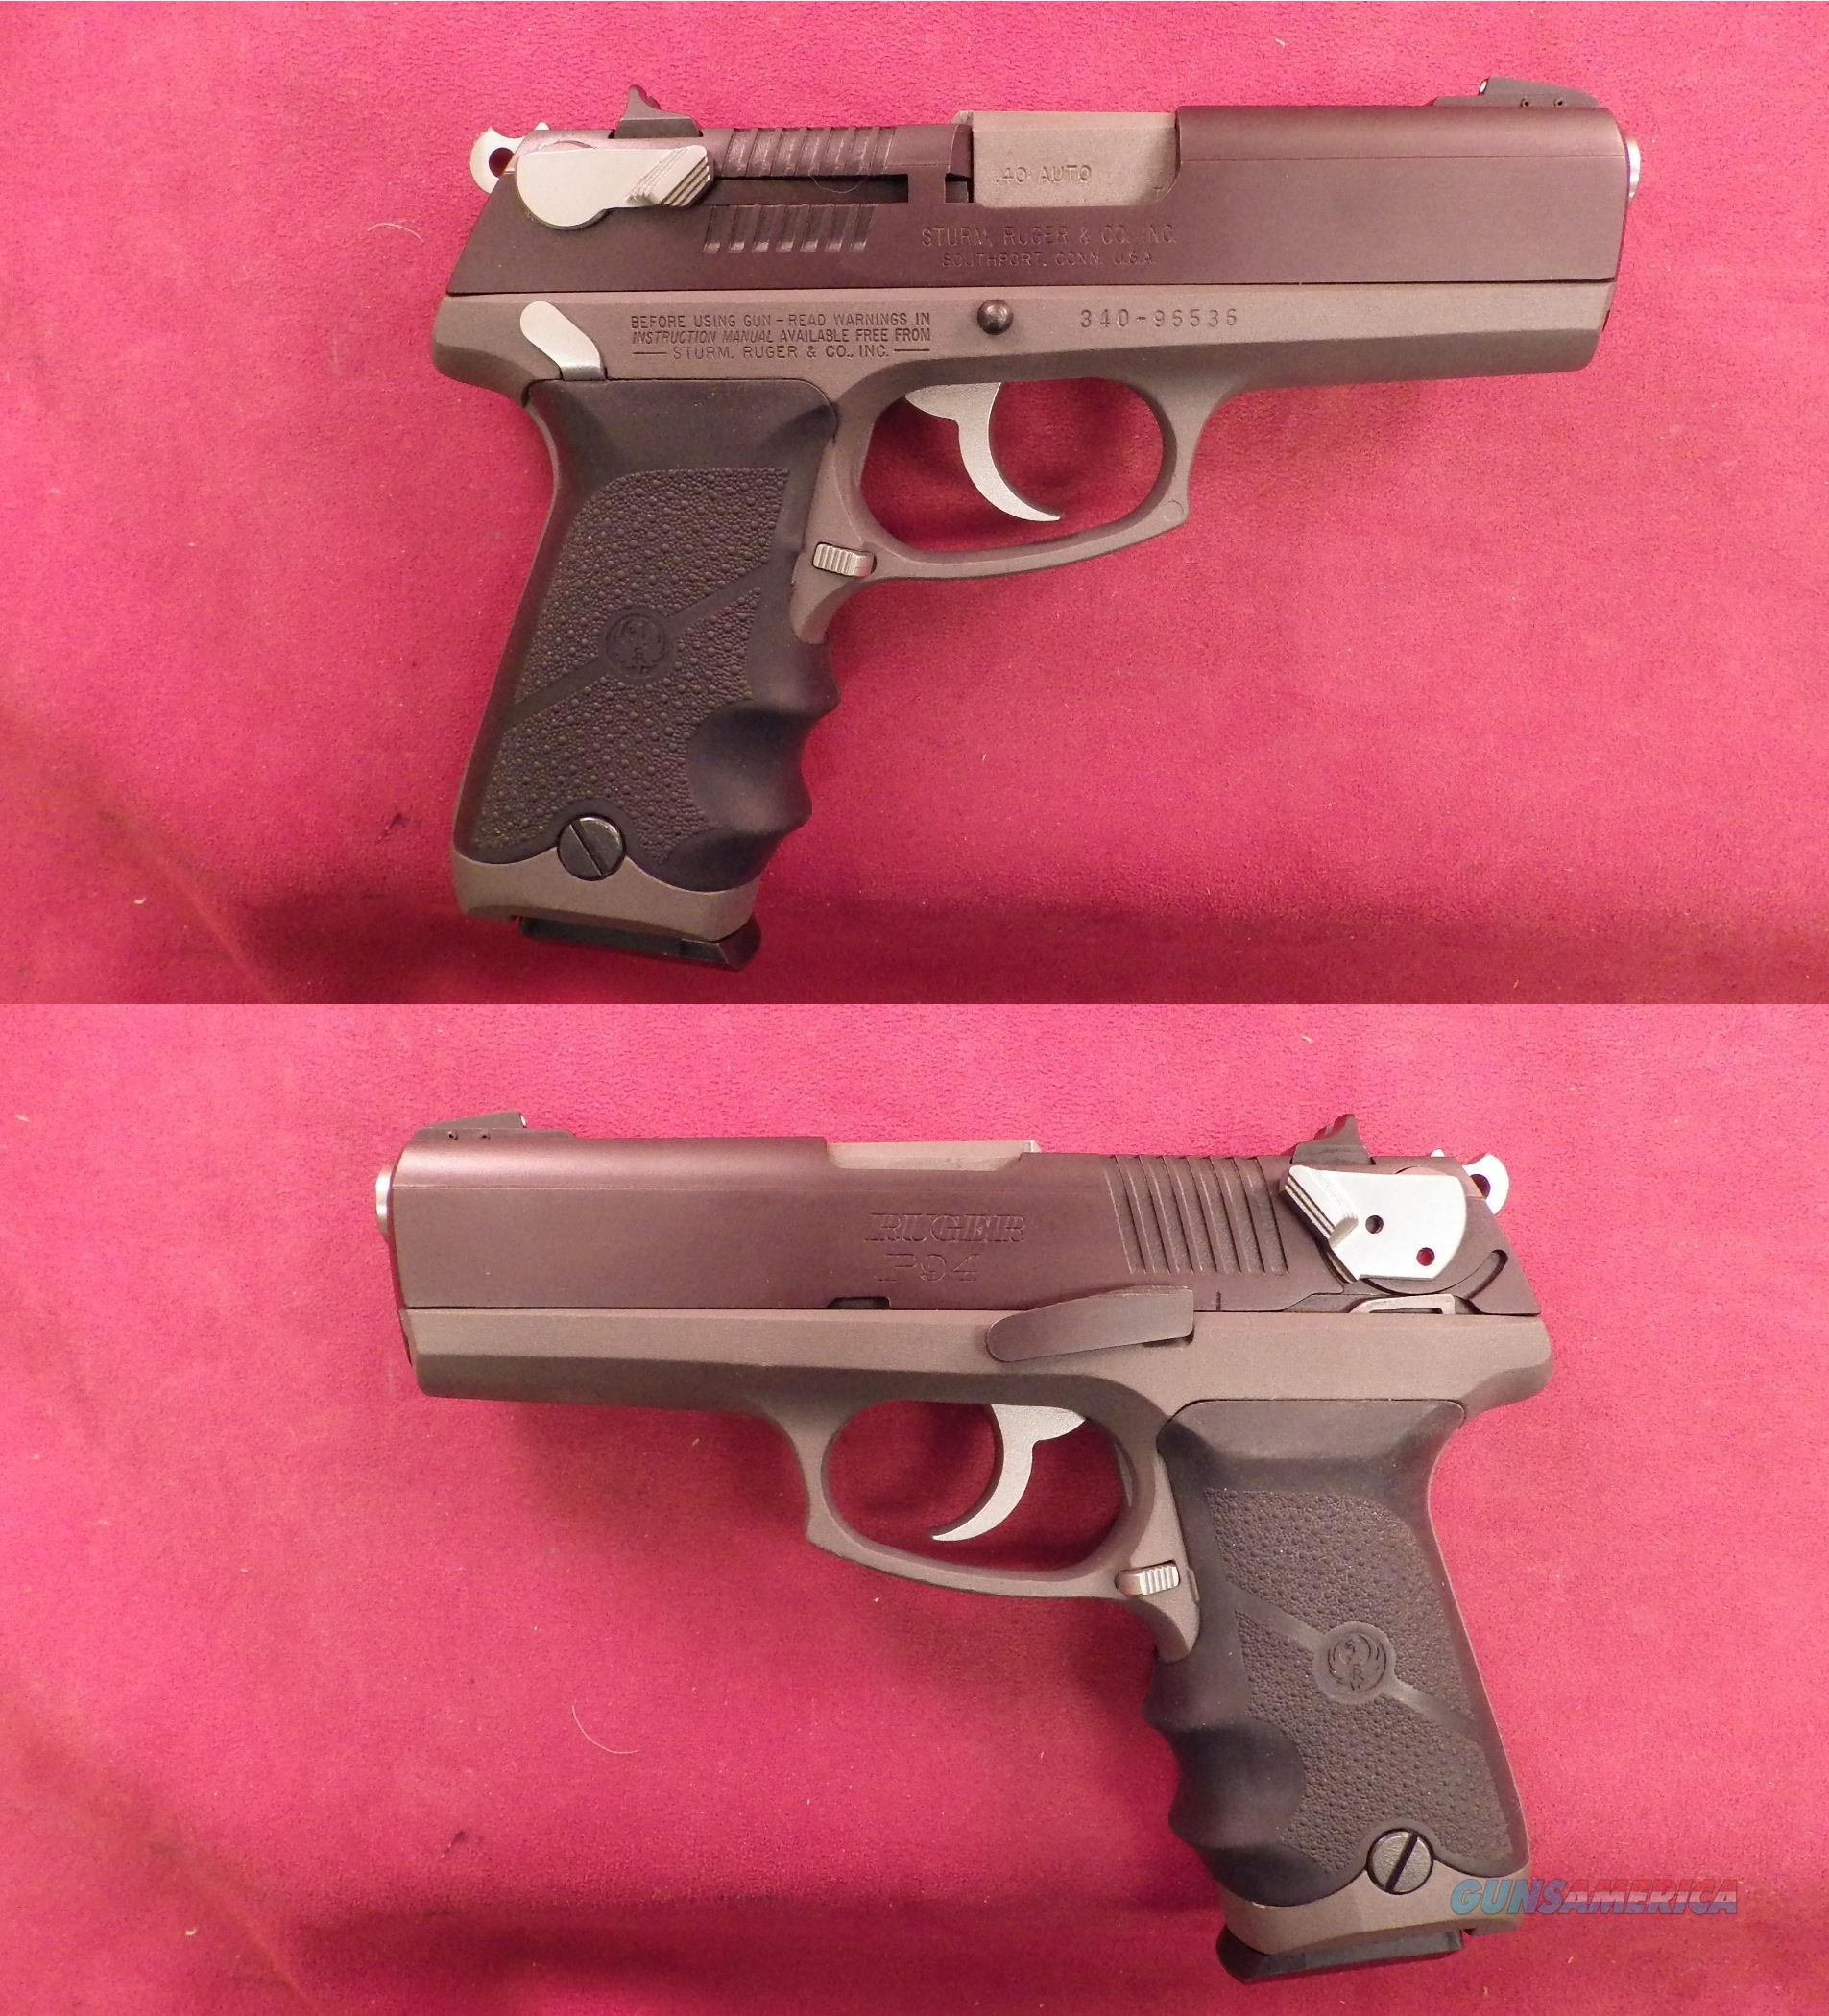 Ruger P94 Special Edition 40 S&W  Guns > Pistols > Ruger Semi-Auto Pistols > P-Series